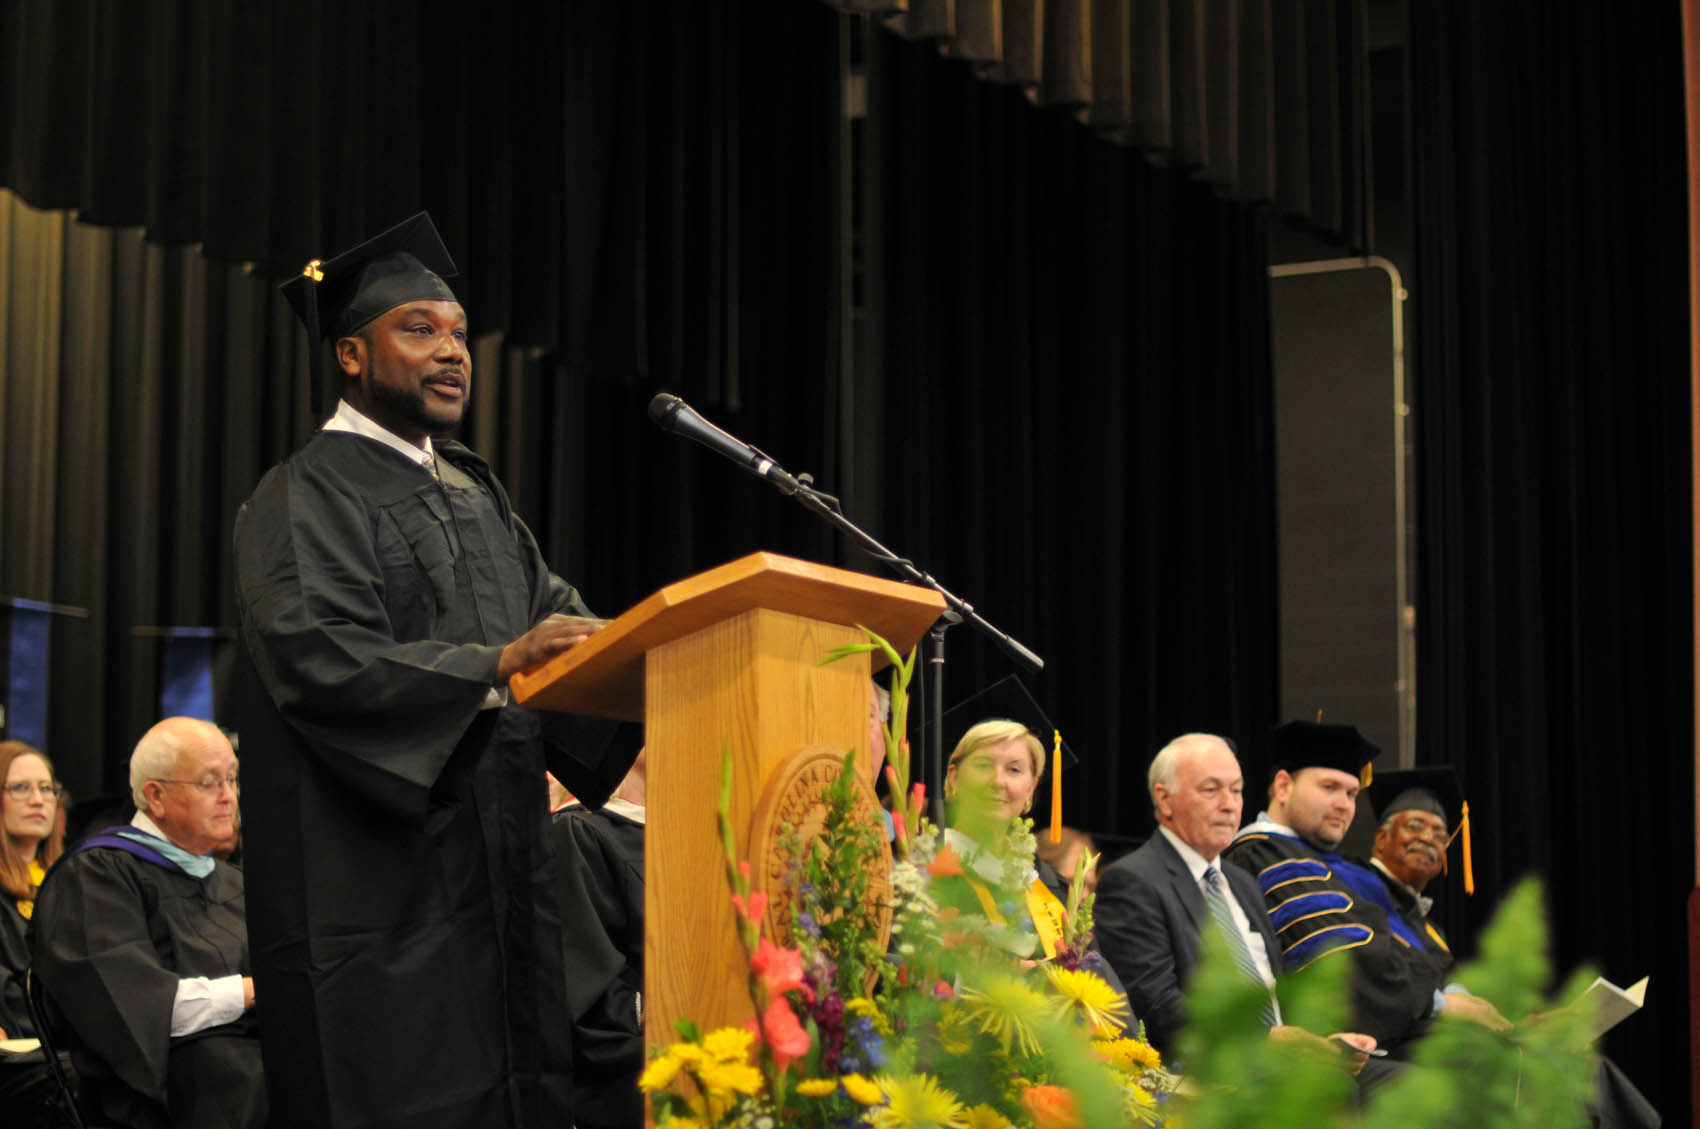 Click to enlarge,  Chriss Harvin, a graduate of the Industrial Systems Technology program, was the student speaker at the Central Carolina Community College 3 p.m. commencement exercises held on May 12 at the Dennis A. Wicker Civic Center in Sanford.